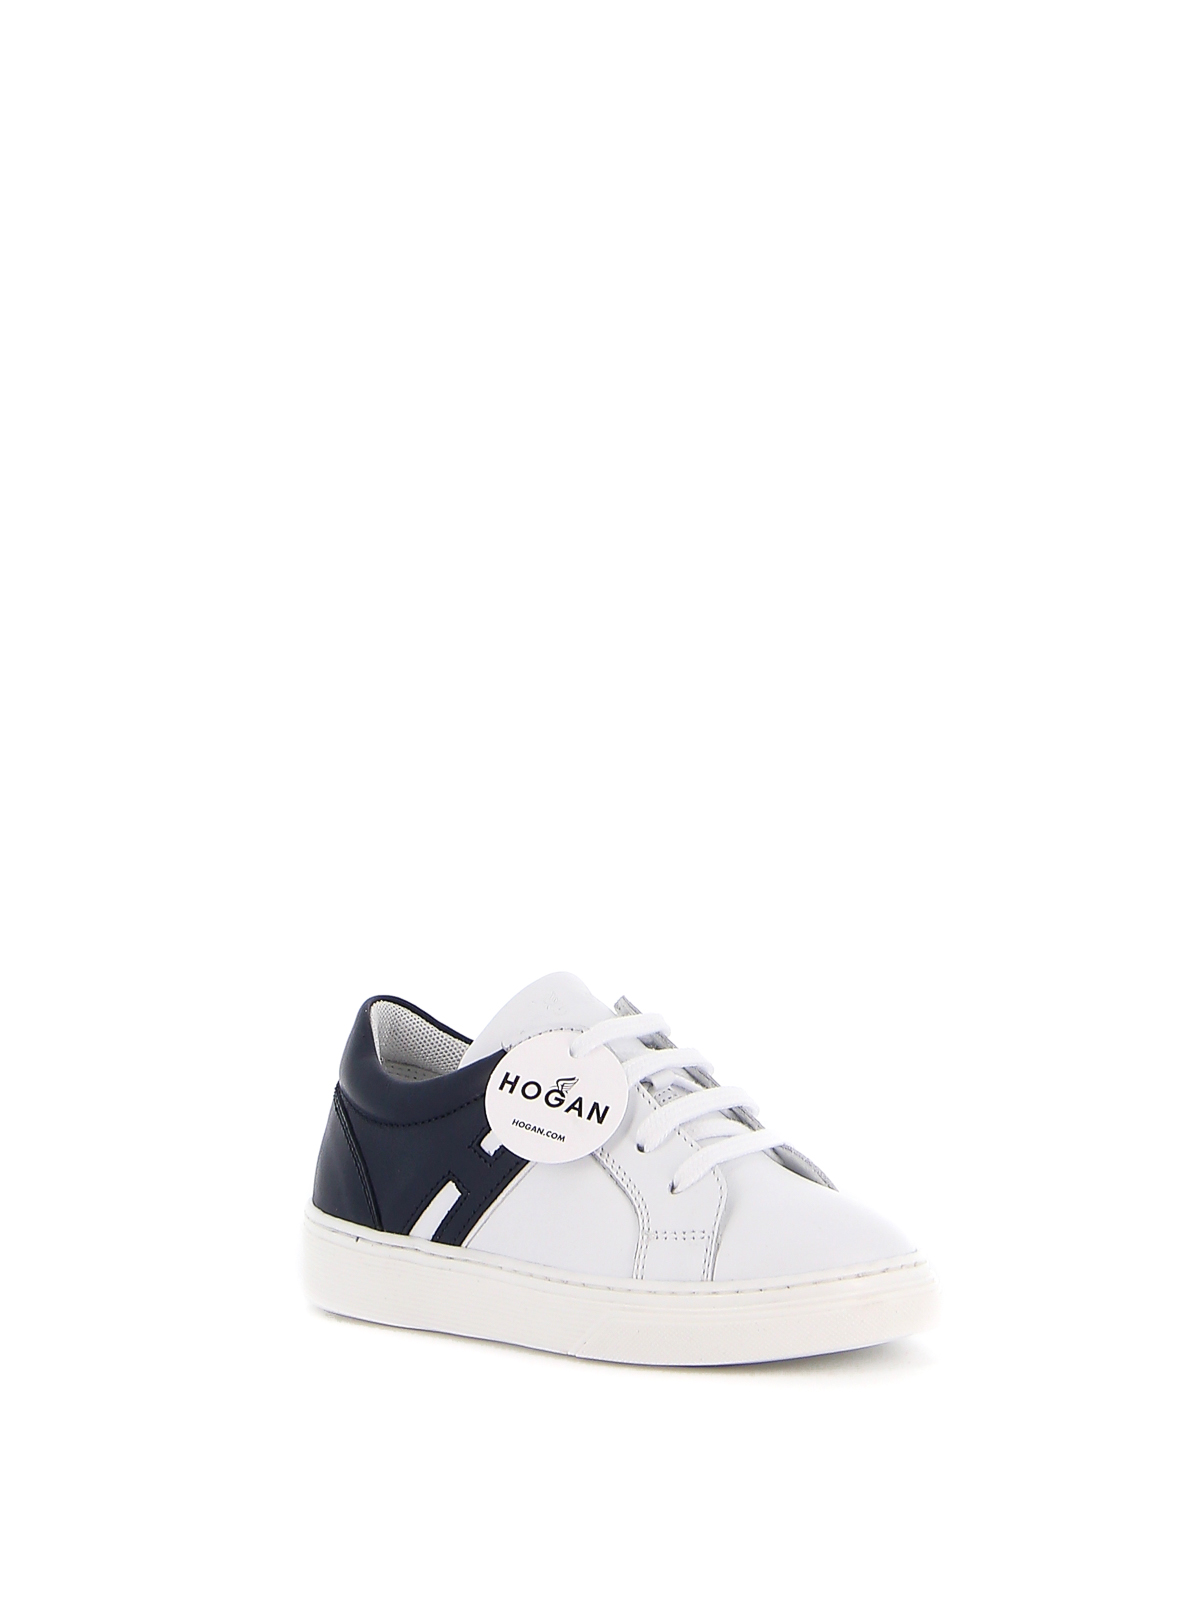 Hogan Junior - J340 sneakers - trainers - HXT3400CT20FH51563 ...